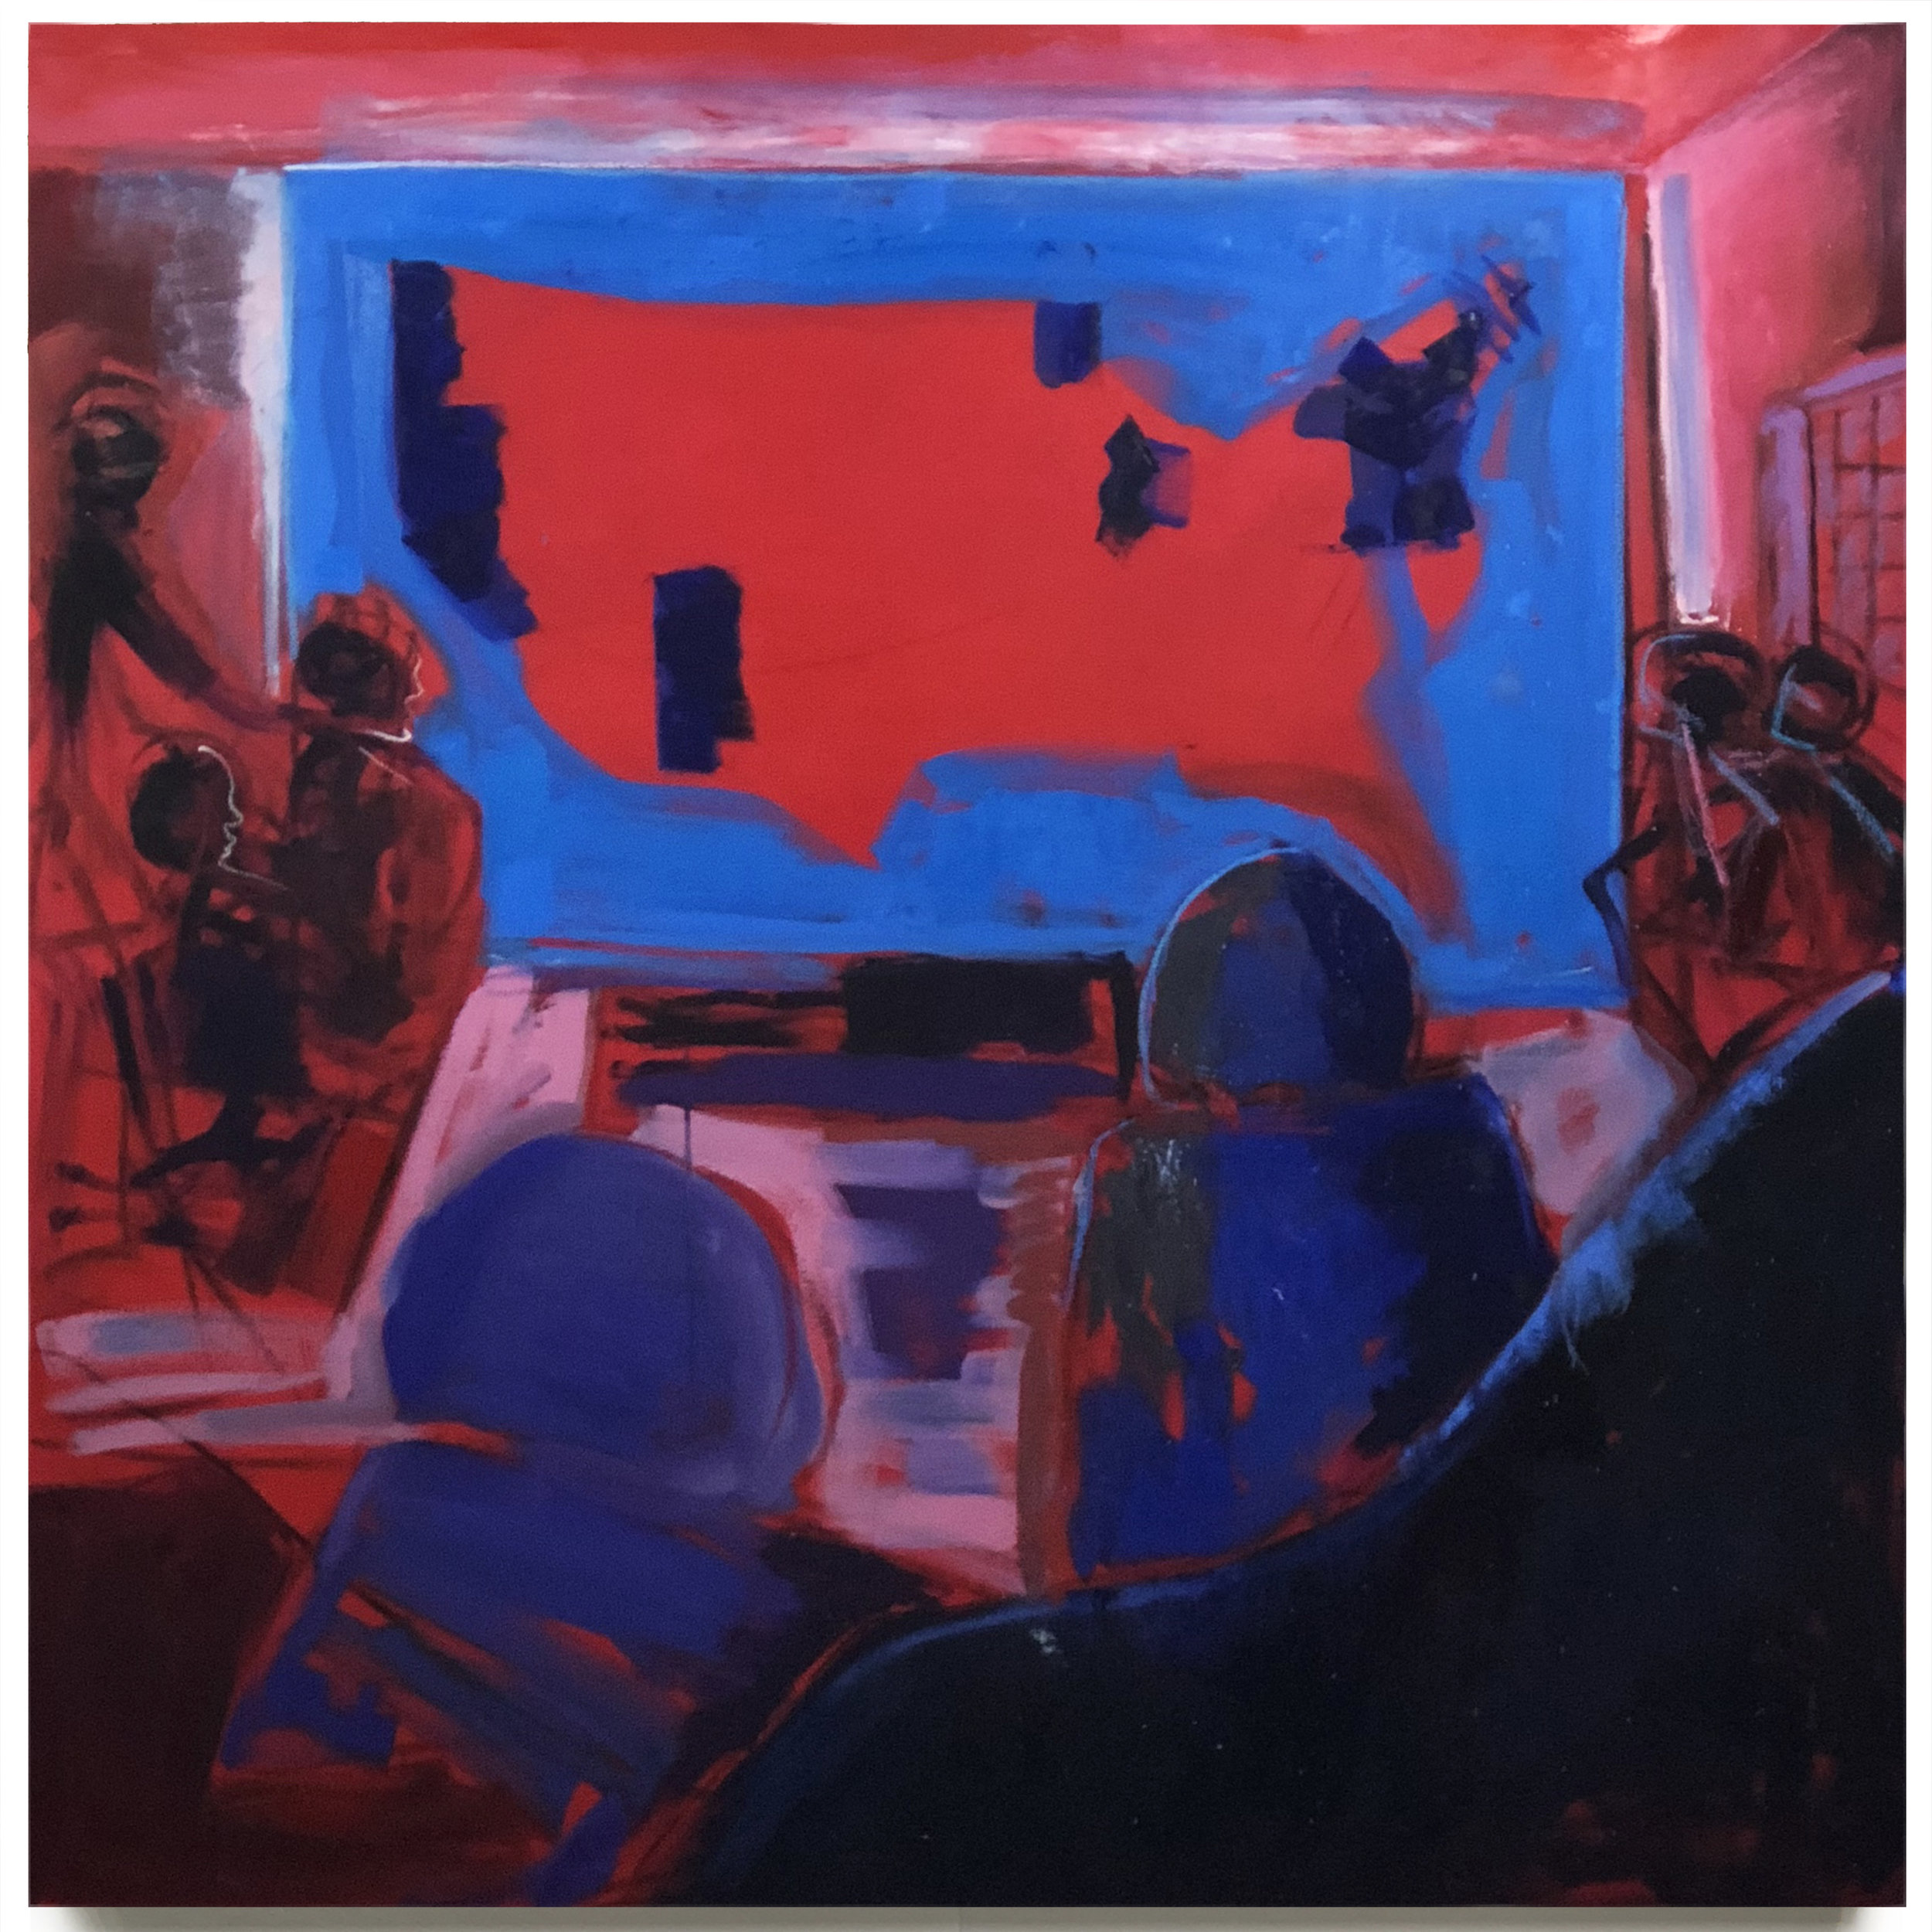 "Red: 2016 . Oil On Canvas. 60"" x 60"". 2018"